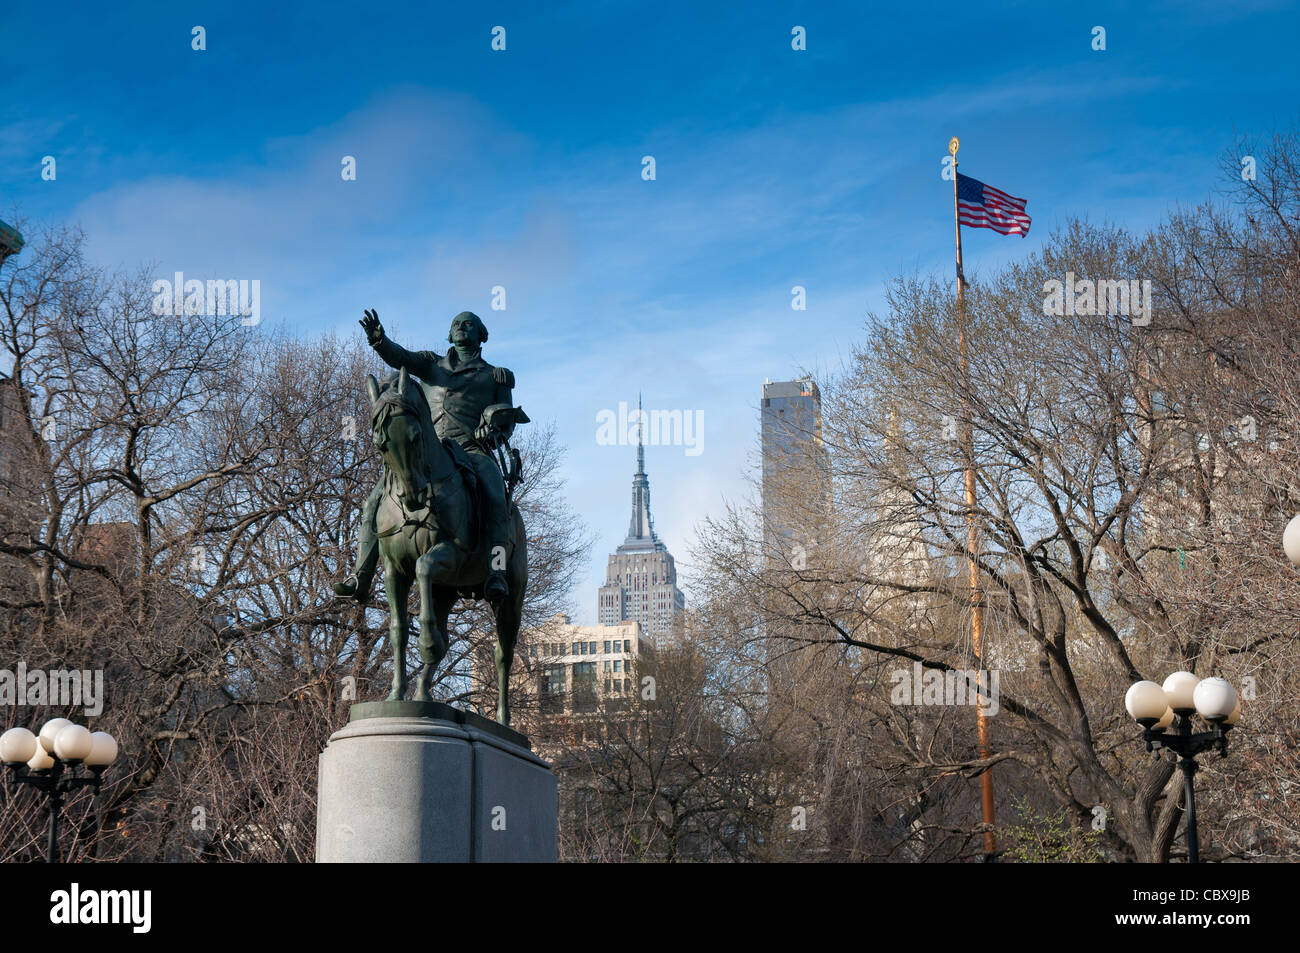 Statue of George Washington in the park of Union Square in Manhattan, New York City Stock Photo